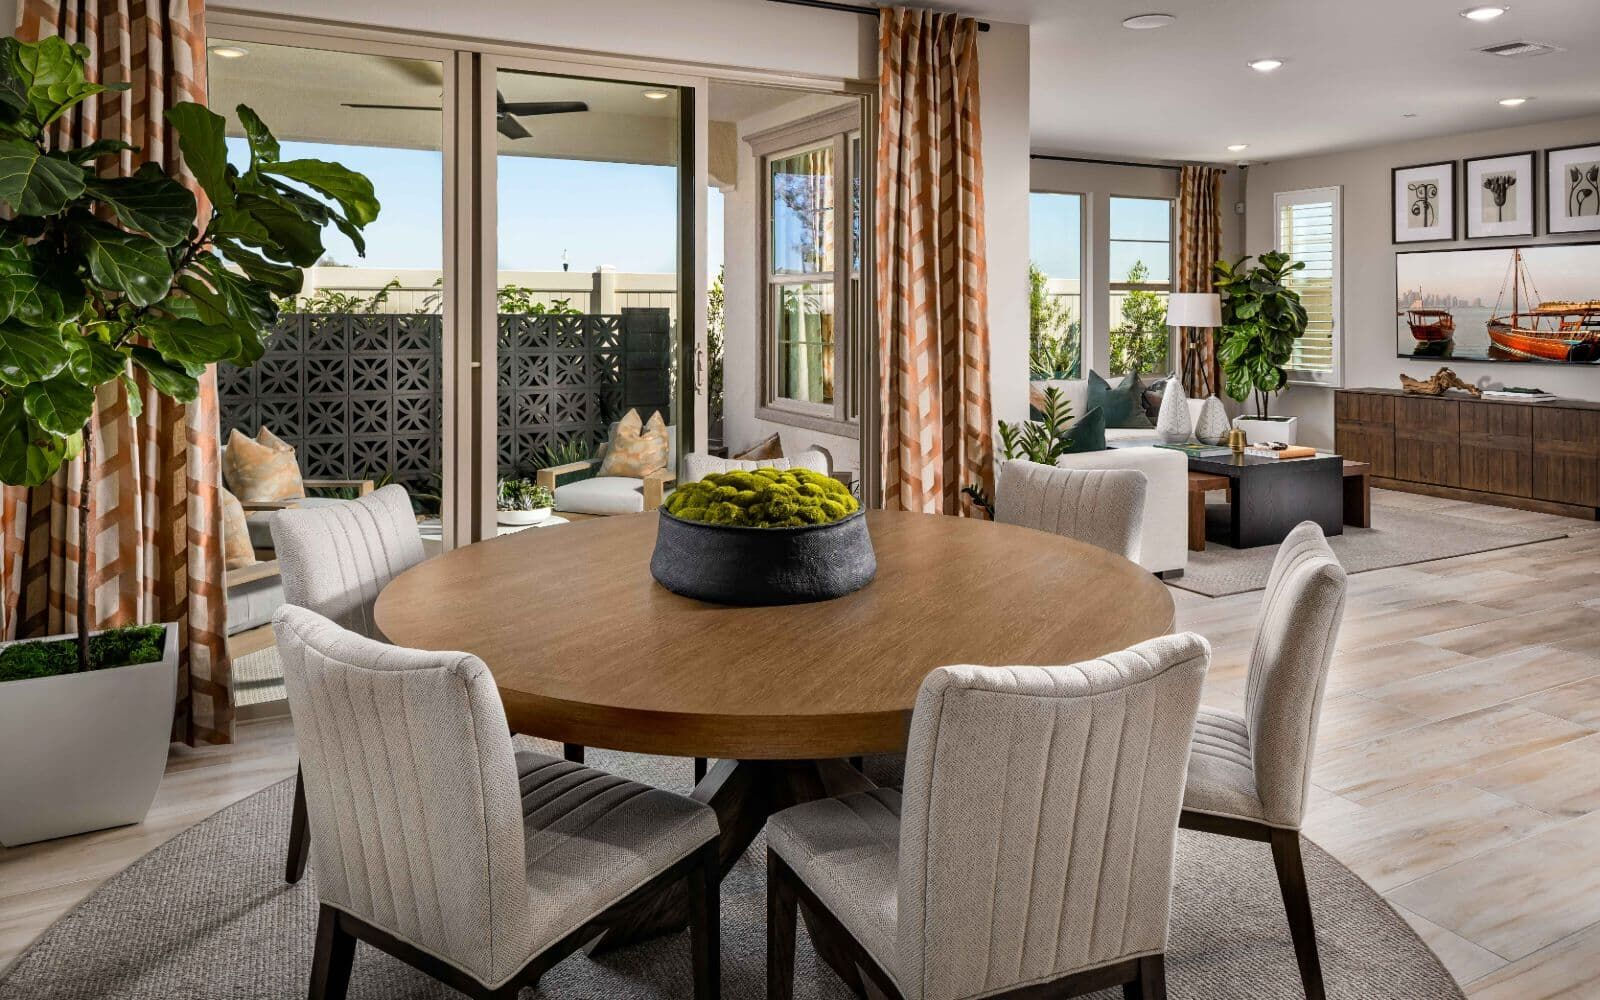 Kitchen featured in the Plan 4 By Brookfield Residential in Los Angeles, CA